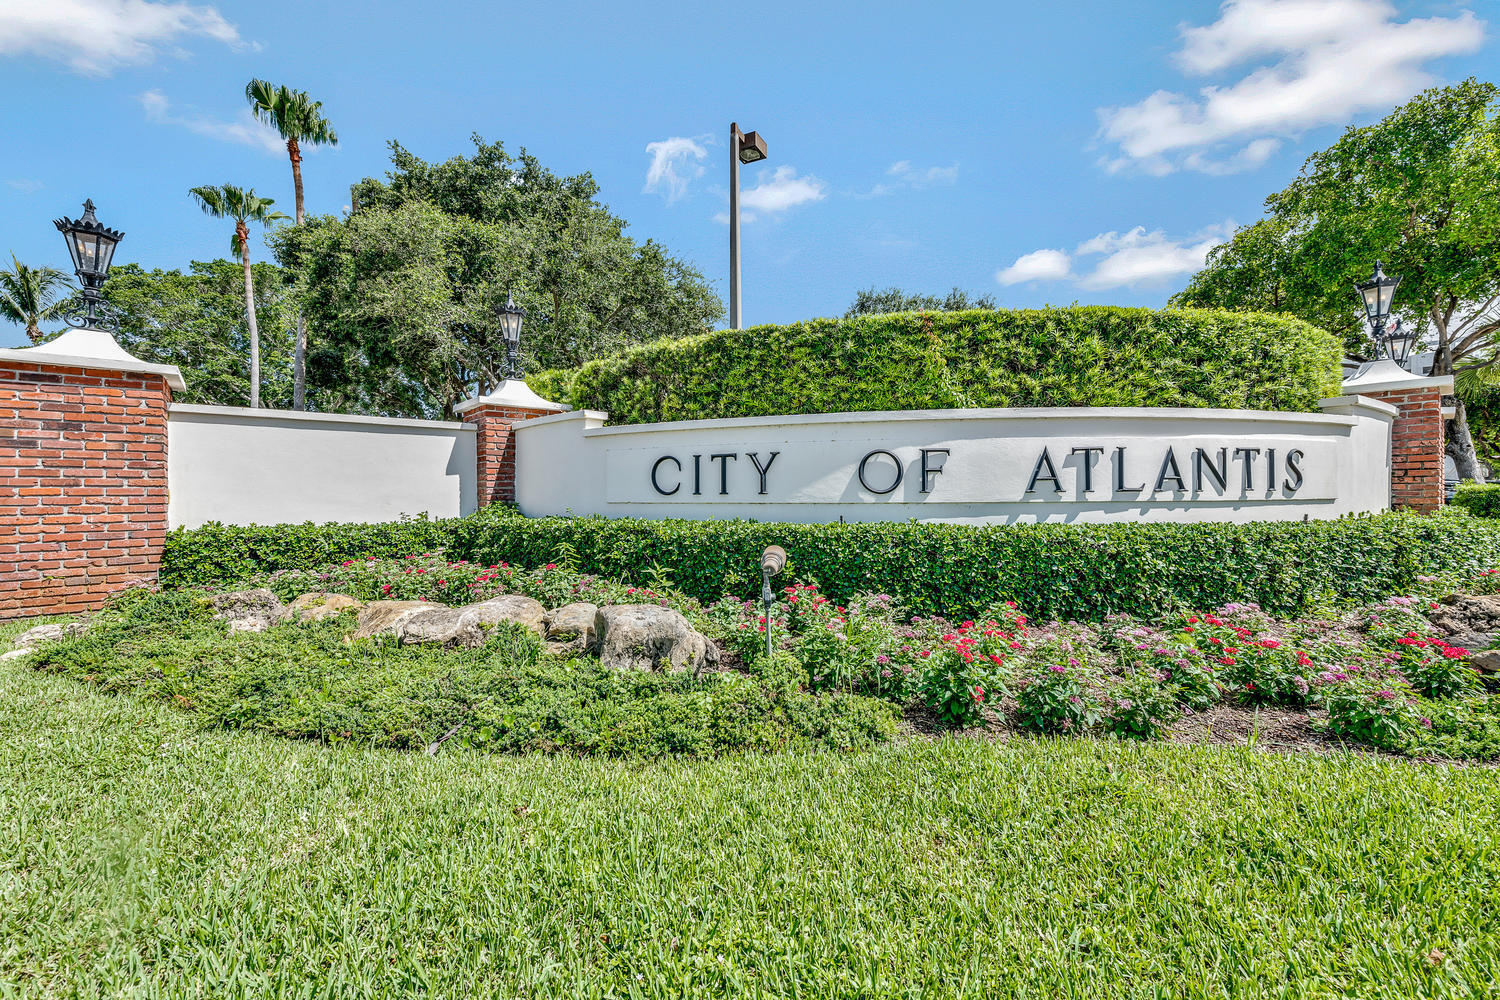 ATLANTIS FLORIDA